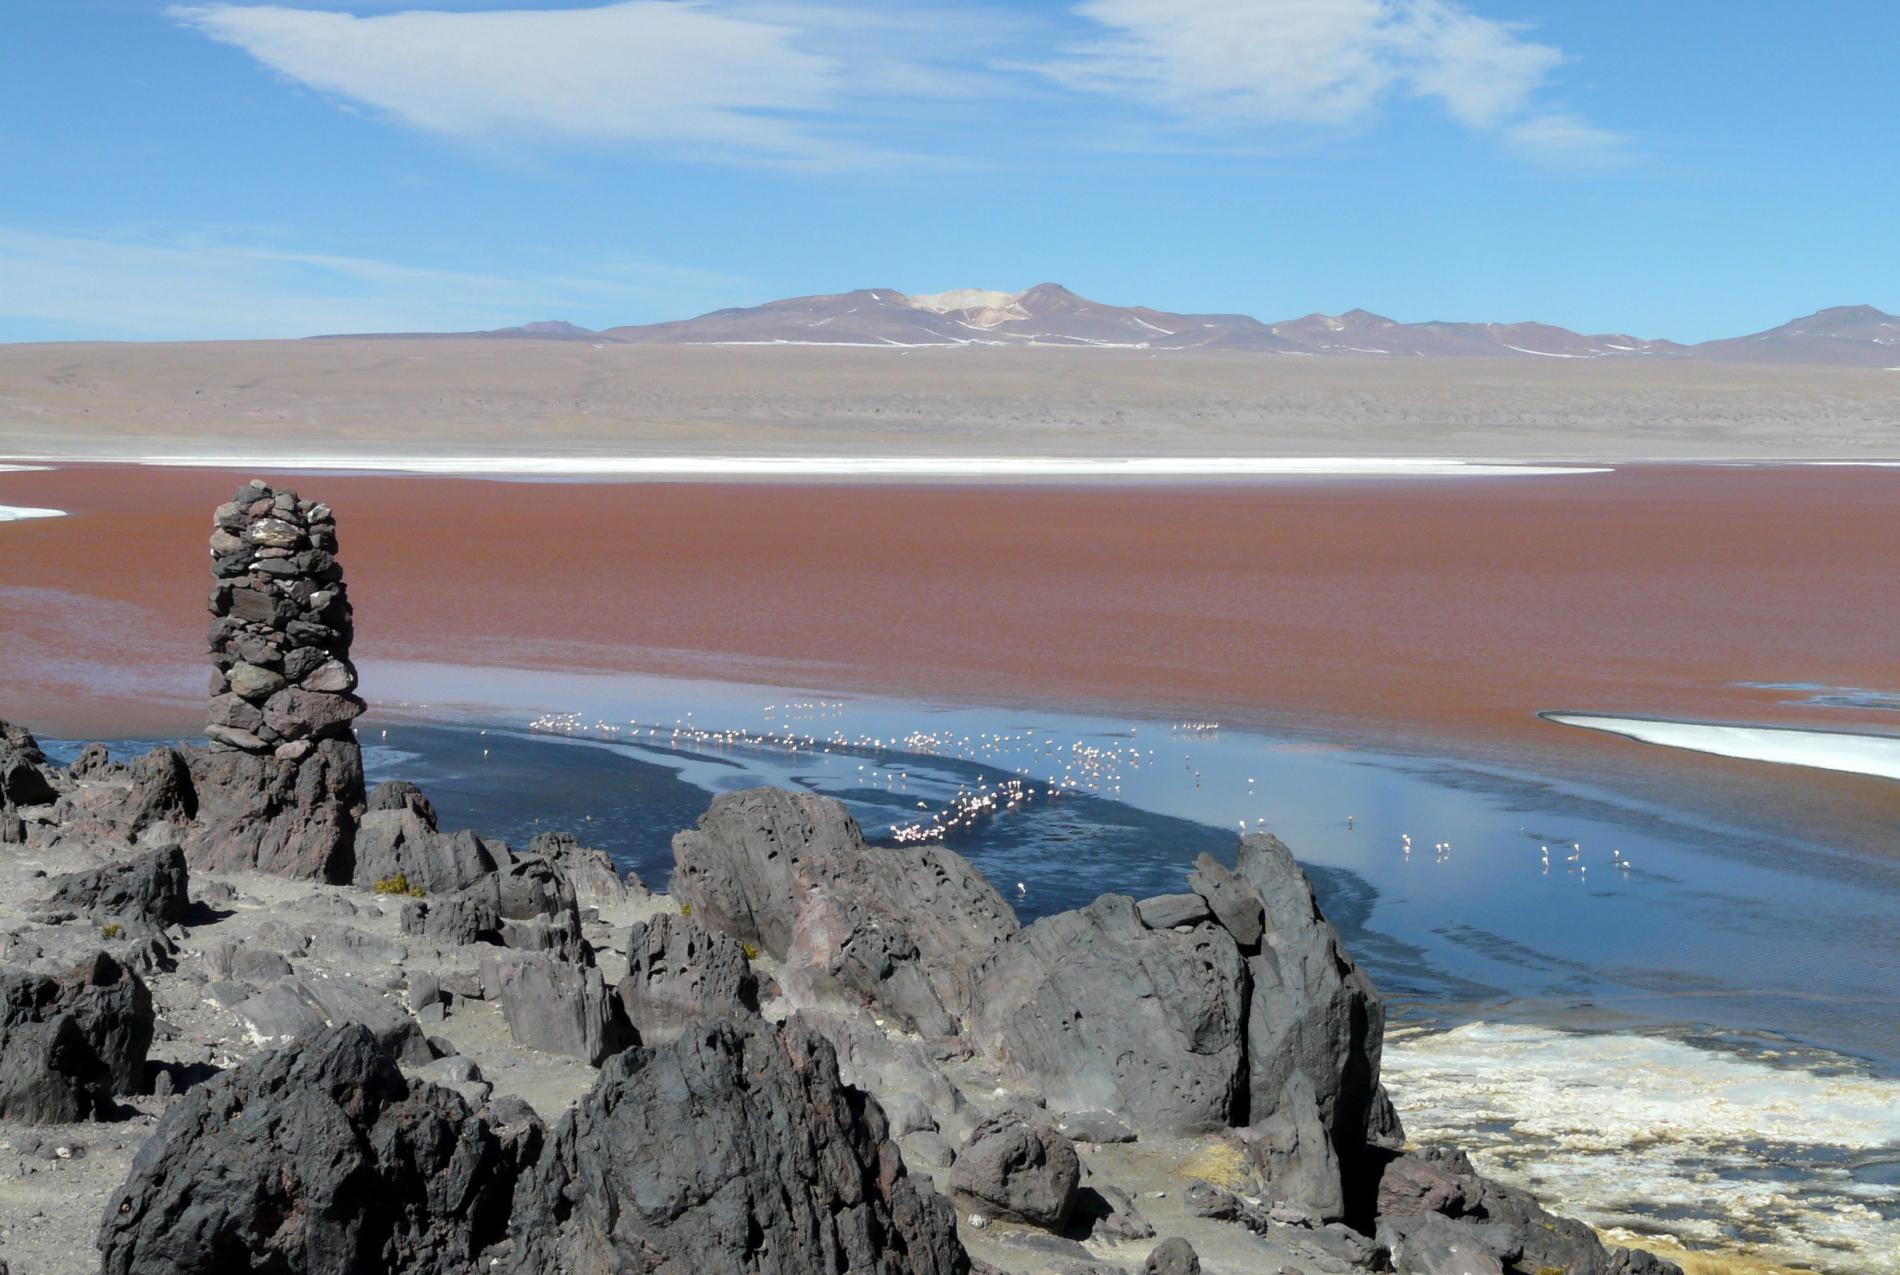 Bolivie : Nos voyages solidaires